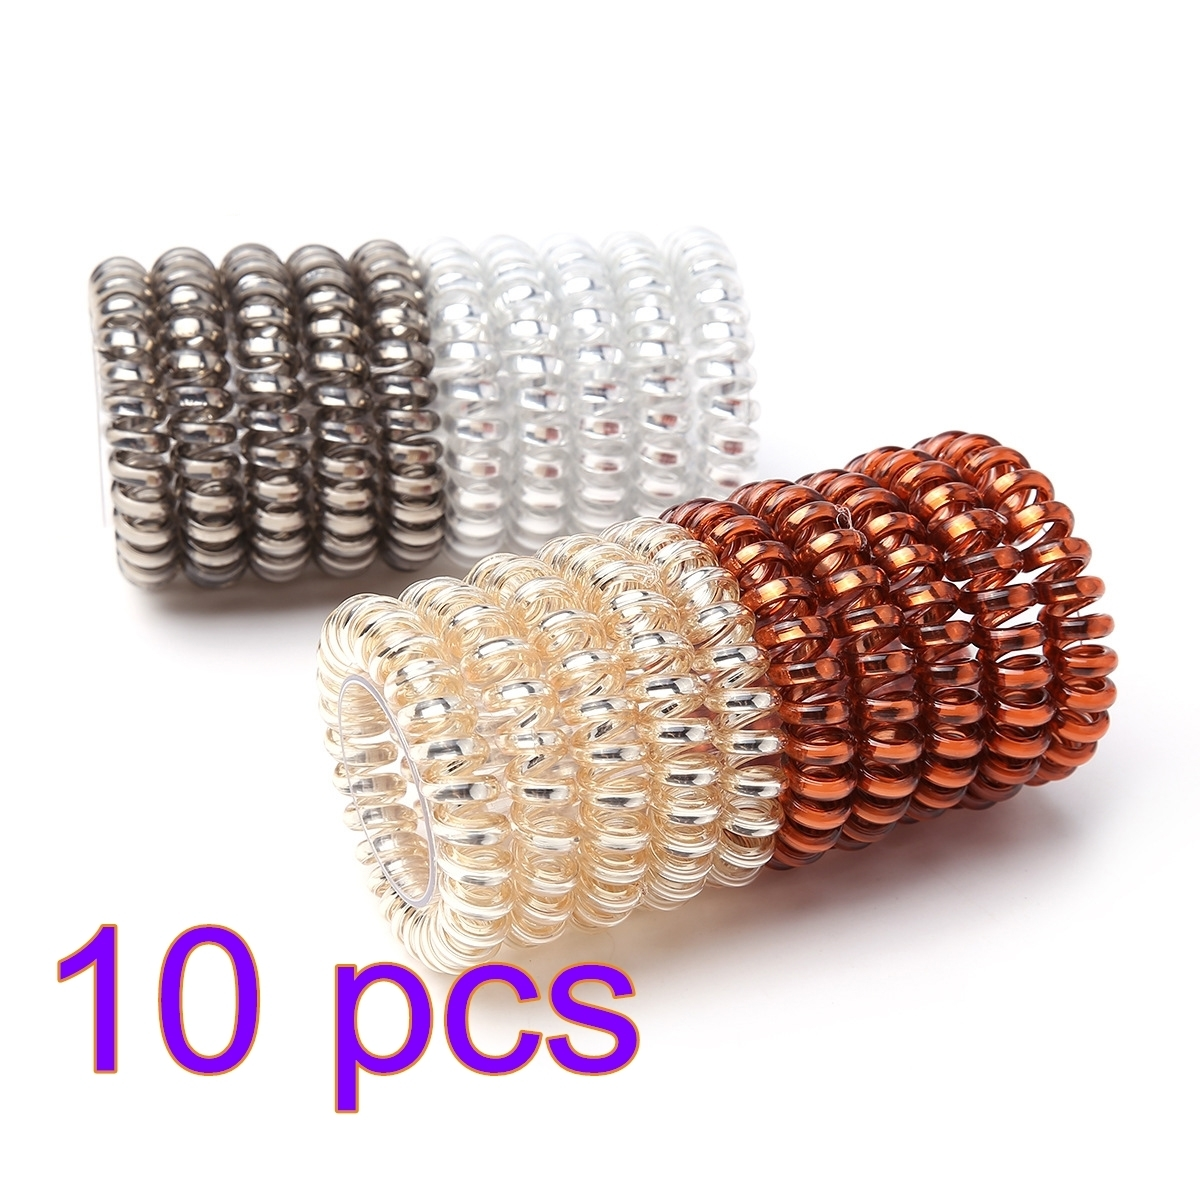 Hair Accessories For Women Hair Ring Rope Traceless Girls Gum Springs Elastic Hairbands Headdress Hair Ties Rubber Bands – S